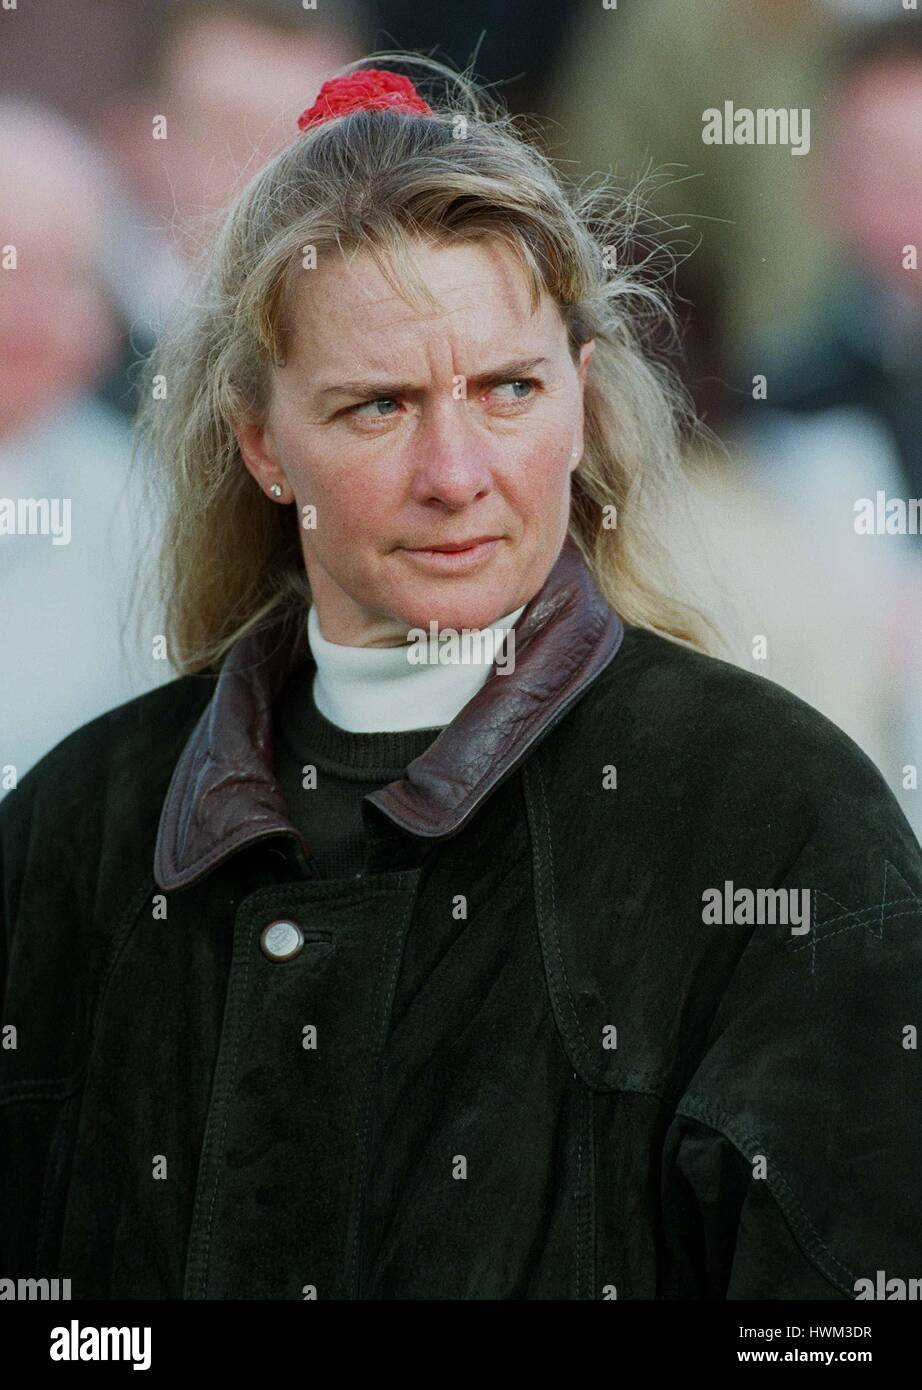 S.J.SMITH RACE HORSE TRAINER 17 October 1996 - Stock Image